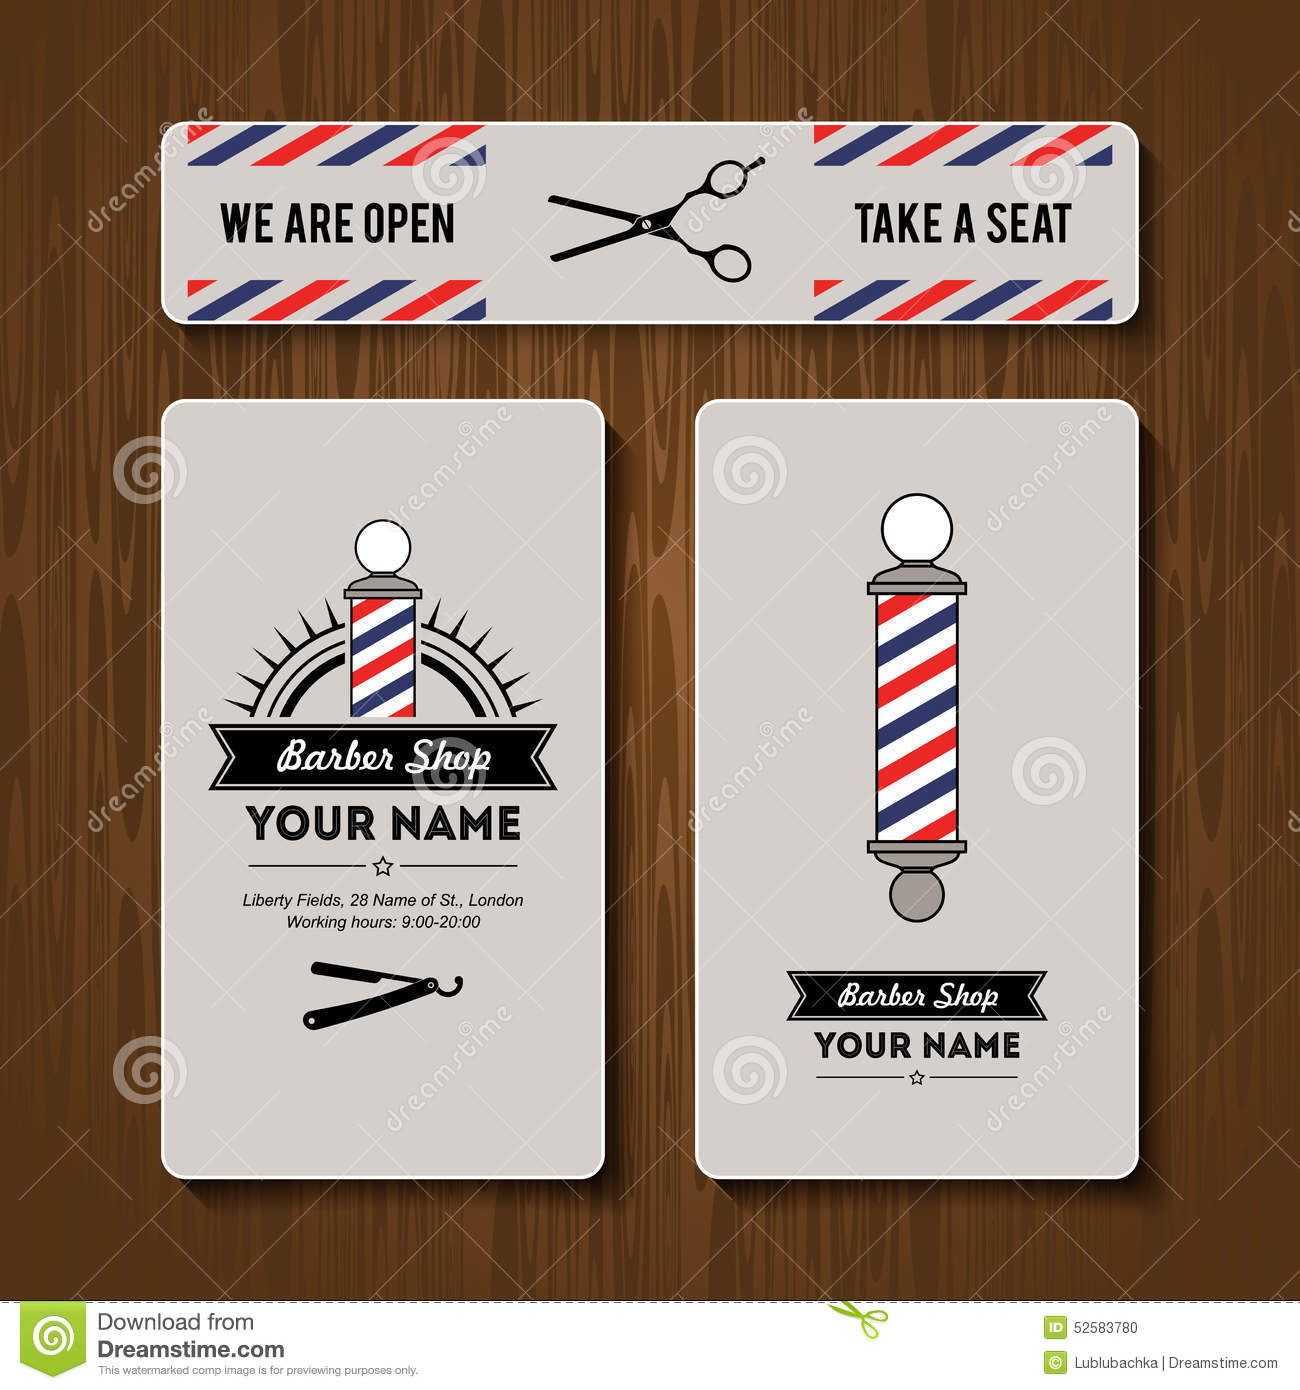 Business card template design for barber shop stock vector hair salon barber shop business card design template set stock photo flashek